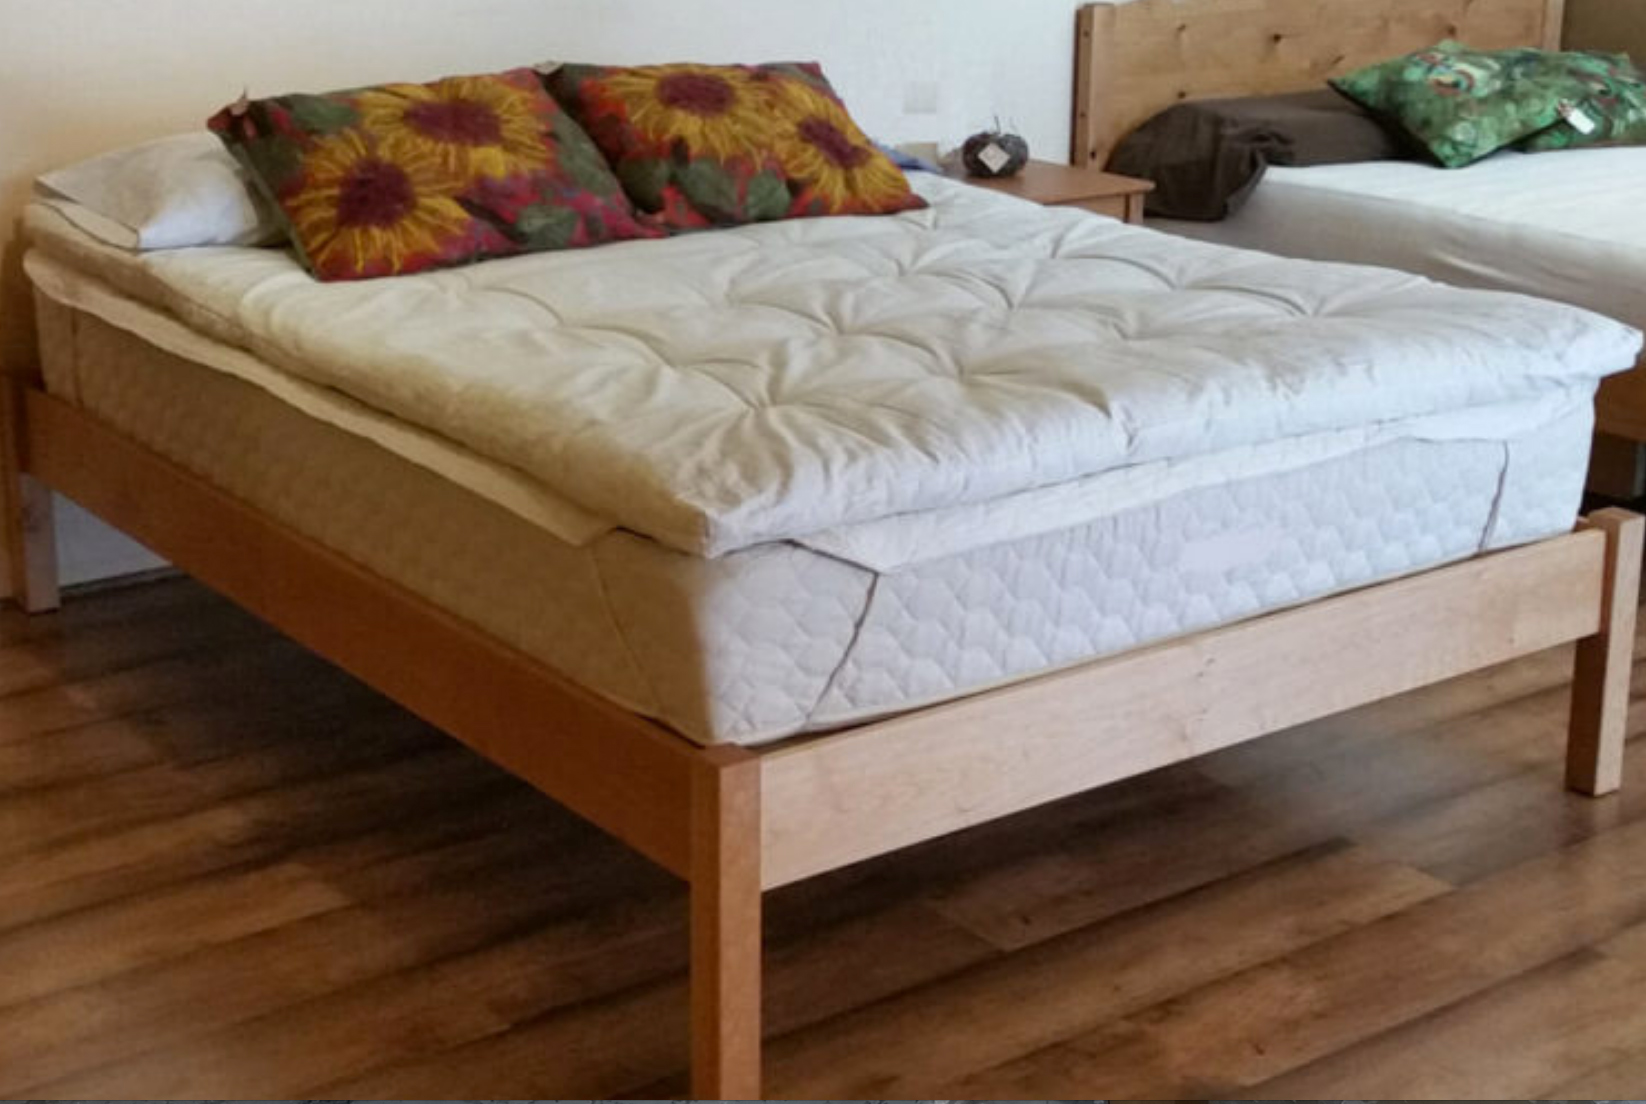 Pacific Rim Columbia Bed And Rogue Bed